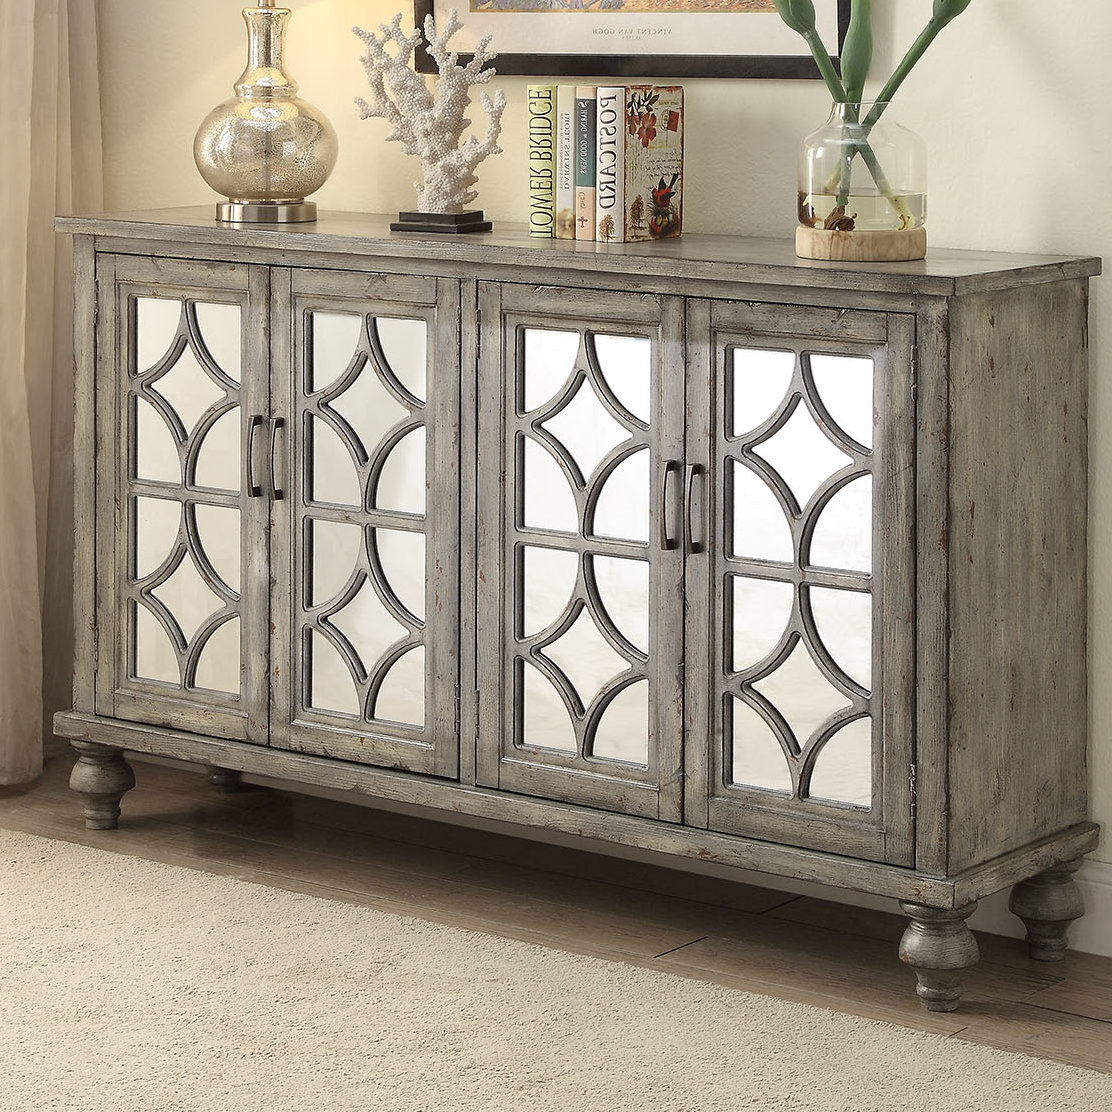 Diondre 4 Door Accent Cabinet | Wayfair With Kara 4 Door Accent Cabinets (View 10 of 20)